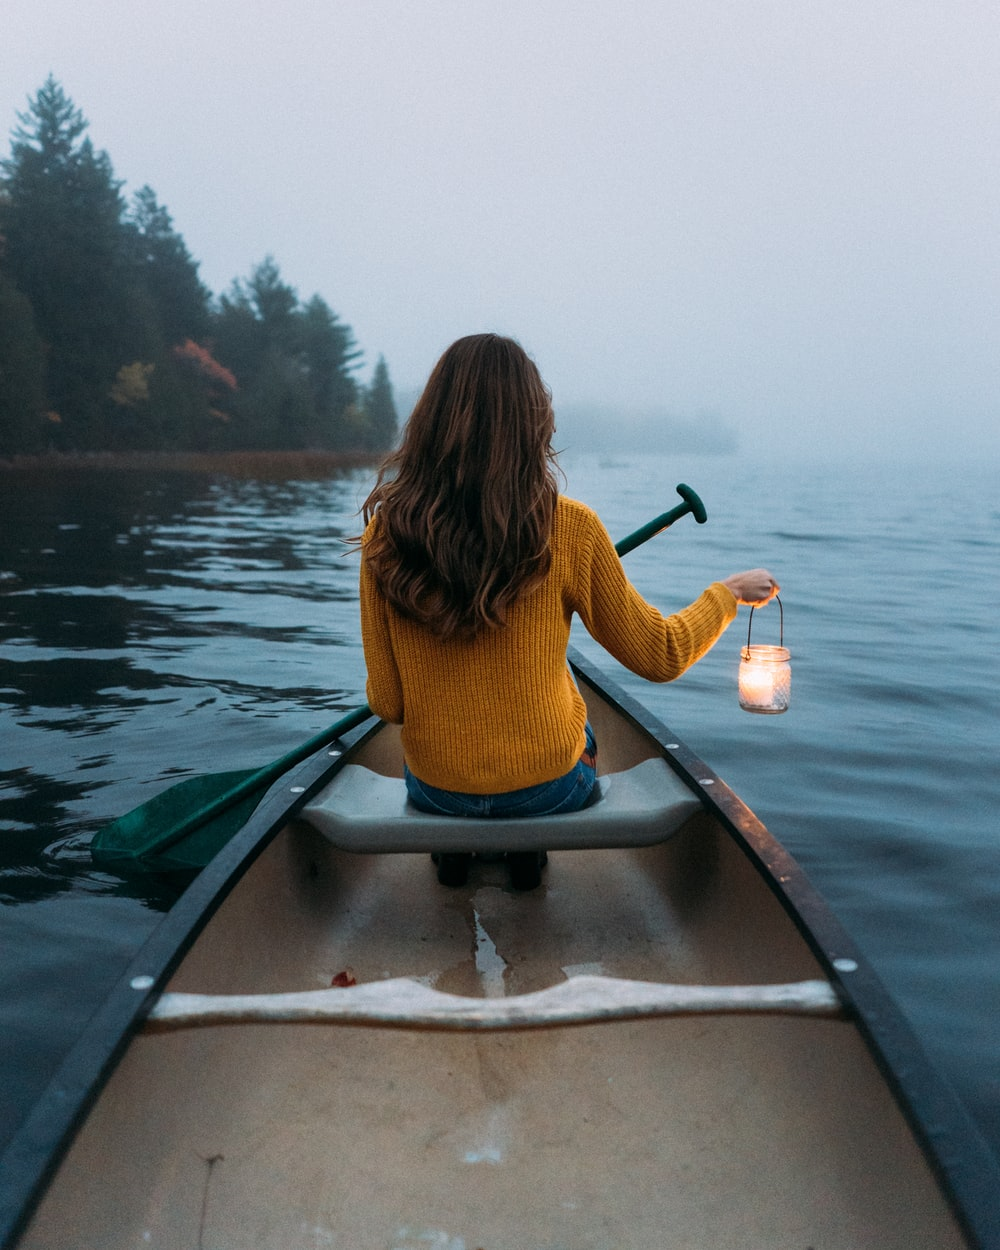 woman sitting and holding lamp on wooden canoe viewing calm body of water